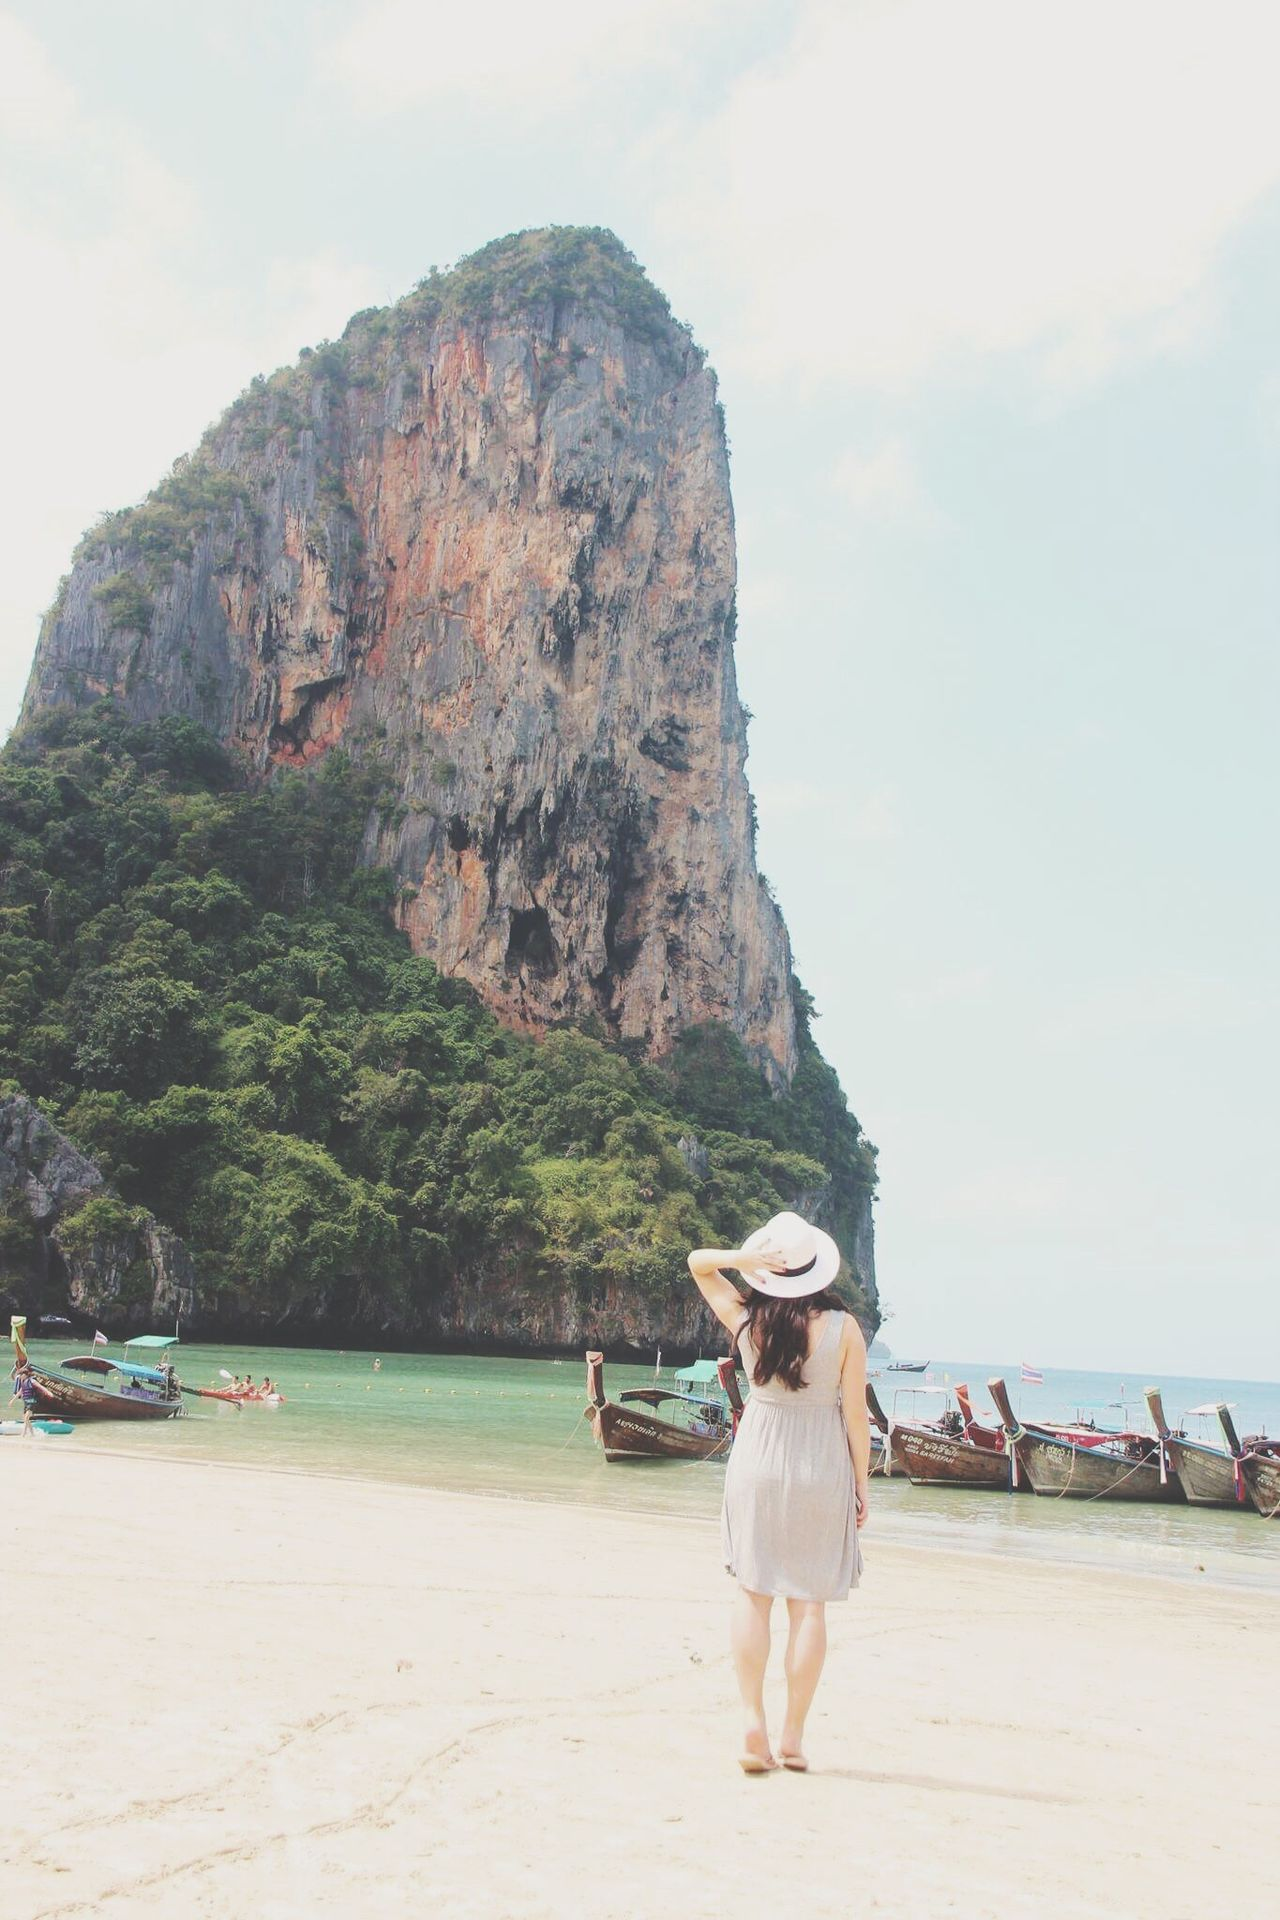 Thailand Travel Destinations Vacations Beauty In Nature Outdoors Beach Rear View Leisure Activity Only Women Tranquility One Woman Only (null)Day Railay Beach